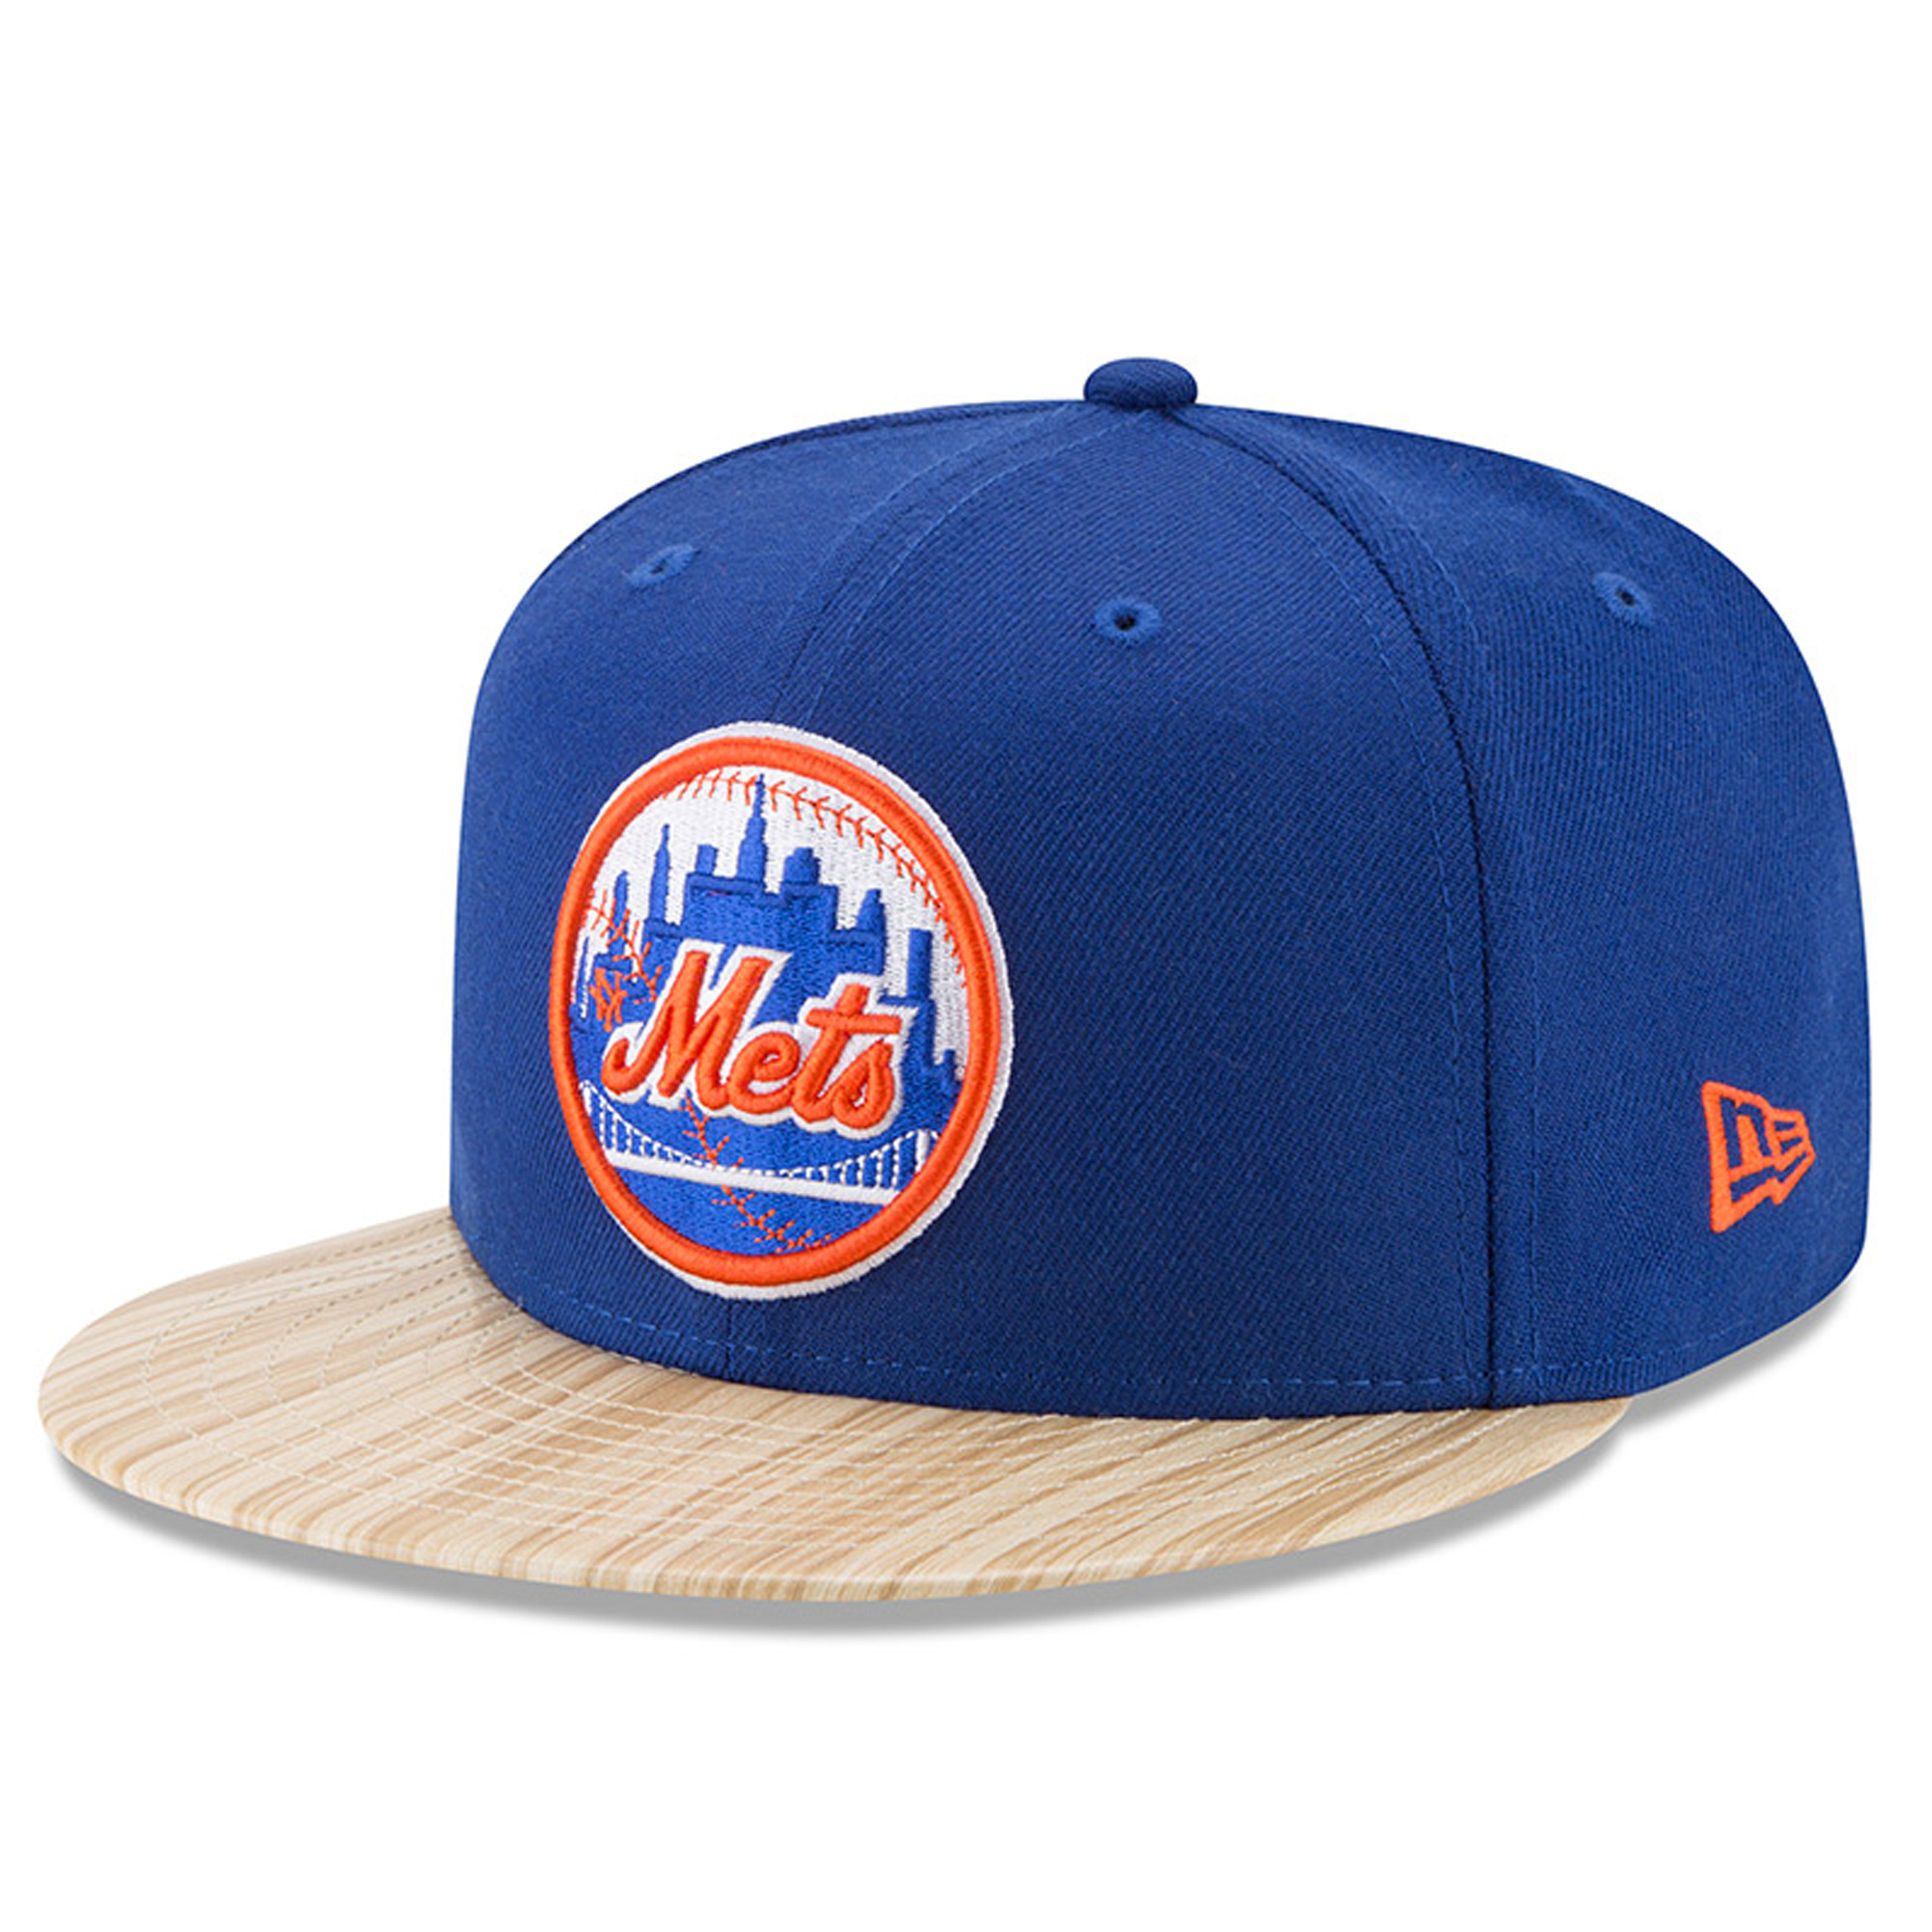 New York Mets New Era 1987 Topps Collaboration 9FIFTY Adjustable Hat - Royal/Tan - OSFA